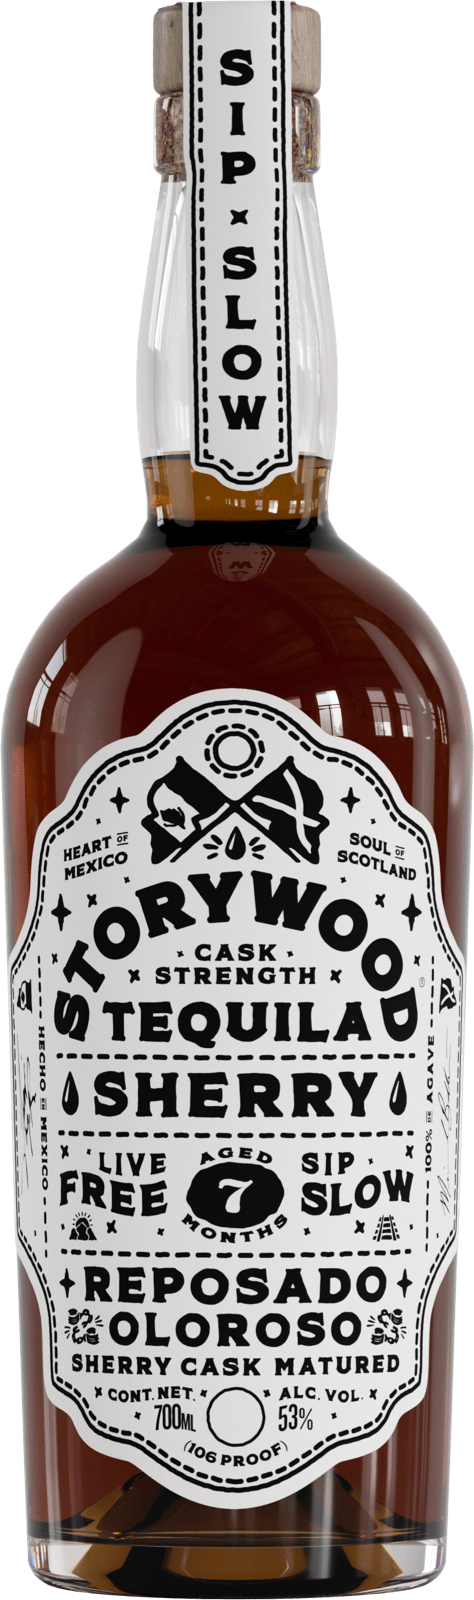 Storywood Sherry 7 tequila